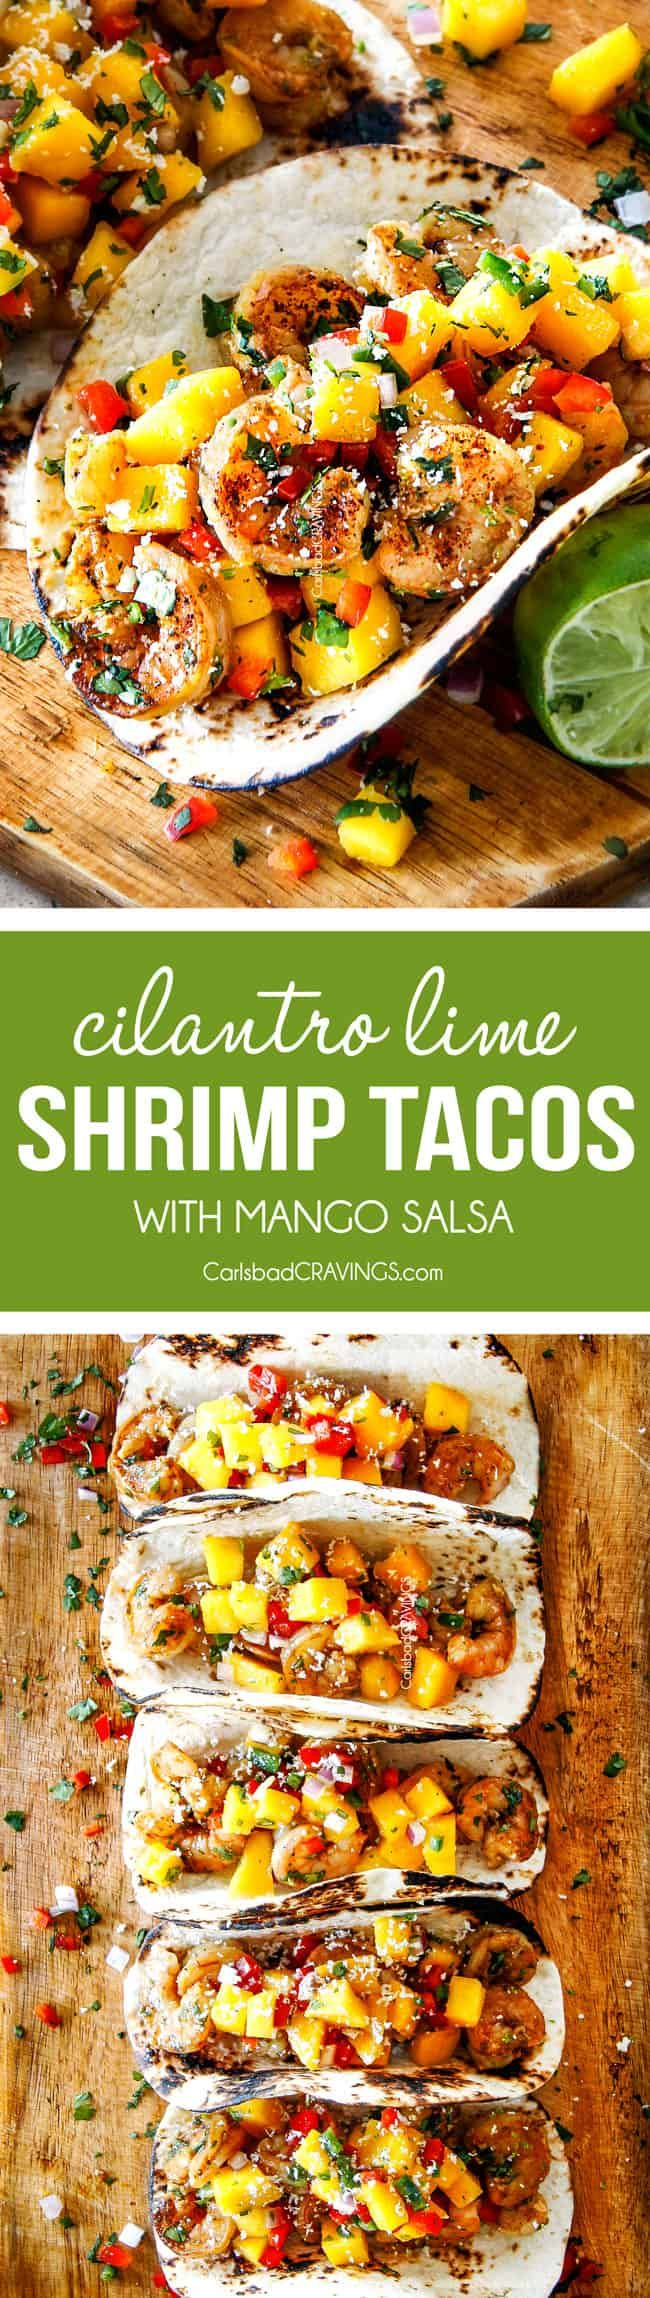 Cilantro Lime Shrimp Tacos EXPLODING with tangy, punchy flavor complimented by sweet refreshing Mango Salsa and silky Avocado Crema on your table in 35 minutes!  You can prep the toppings ahead of time for a super quick and easy weeknight dinner that tastes better than any restaurant! via @carlsbadcraving